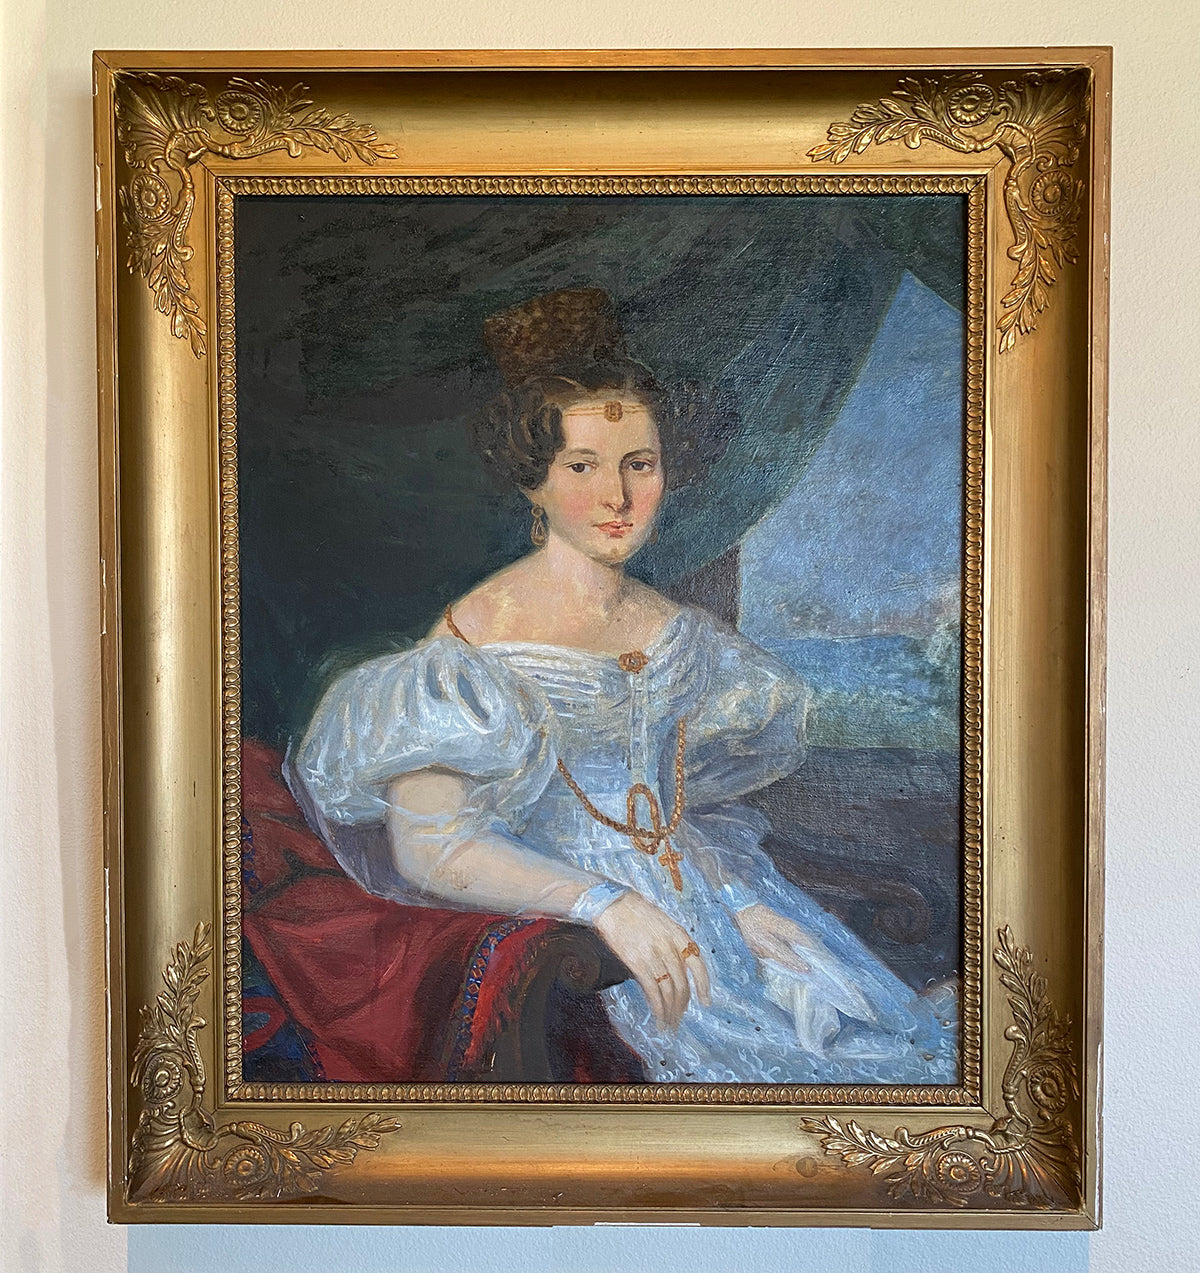 "Antique French Empire Frame 33"" x 28.5"" with Oil Painting Portrait of a Lady, extra Pastel Sketch on Back"